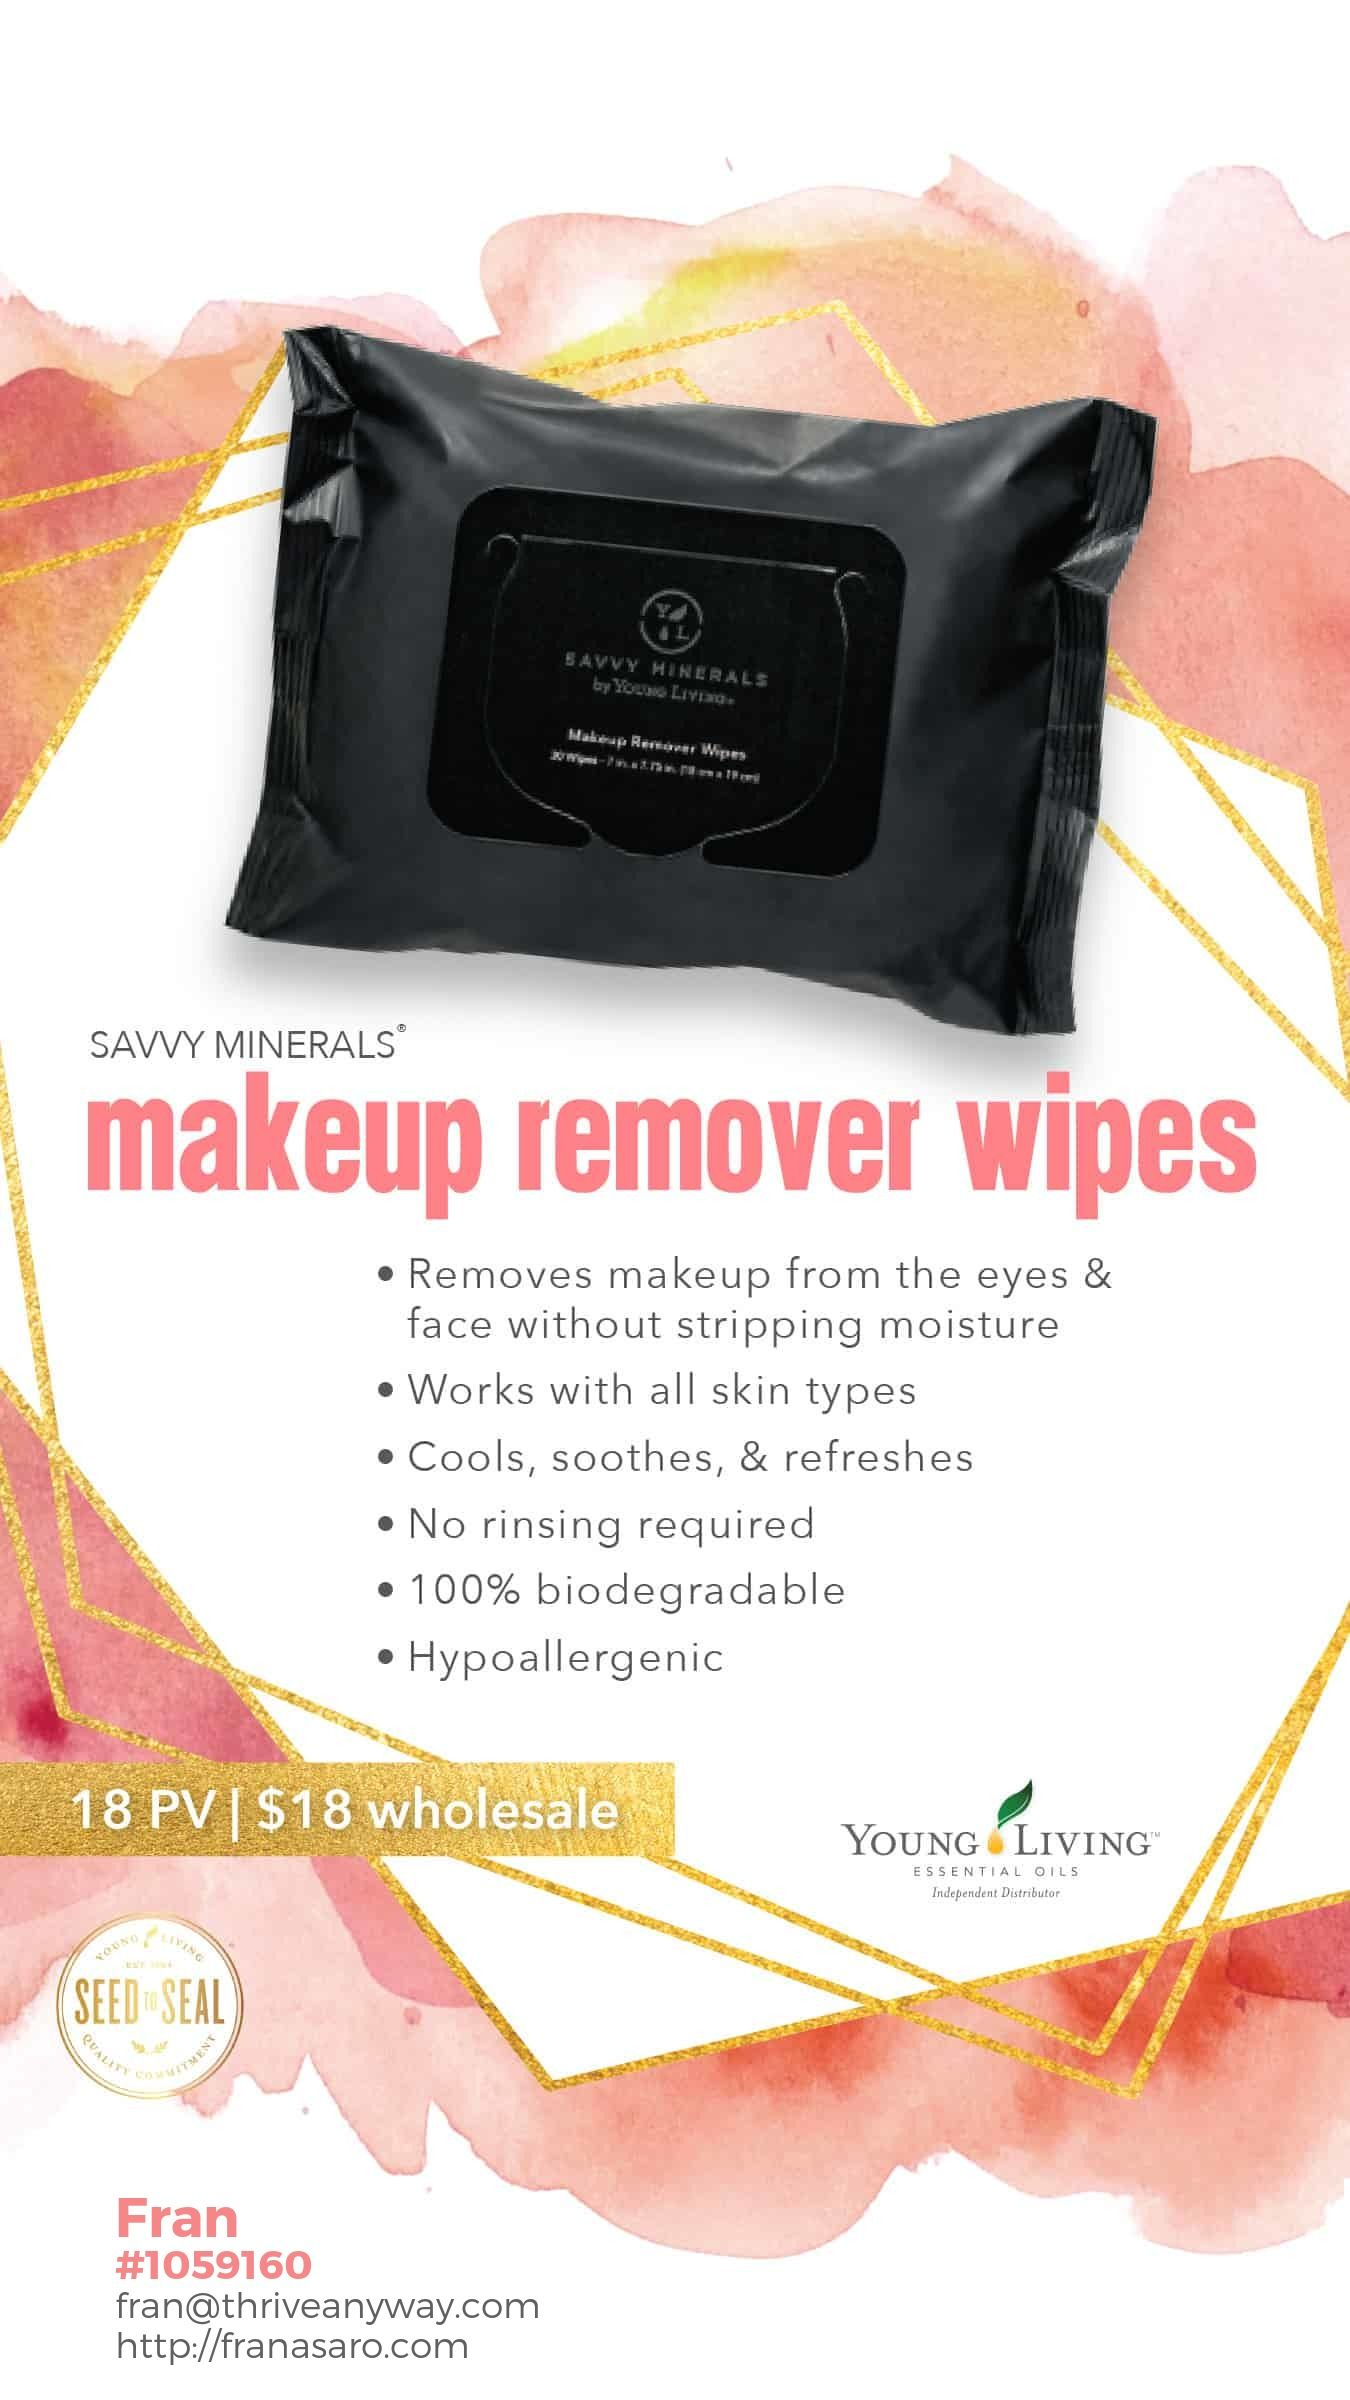 Savvy Minerals Makeup Remover Wipes NEW from Young Living